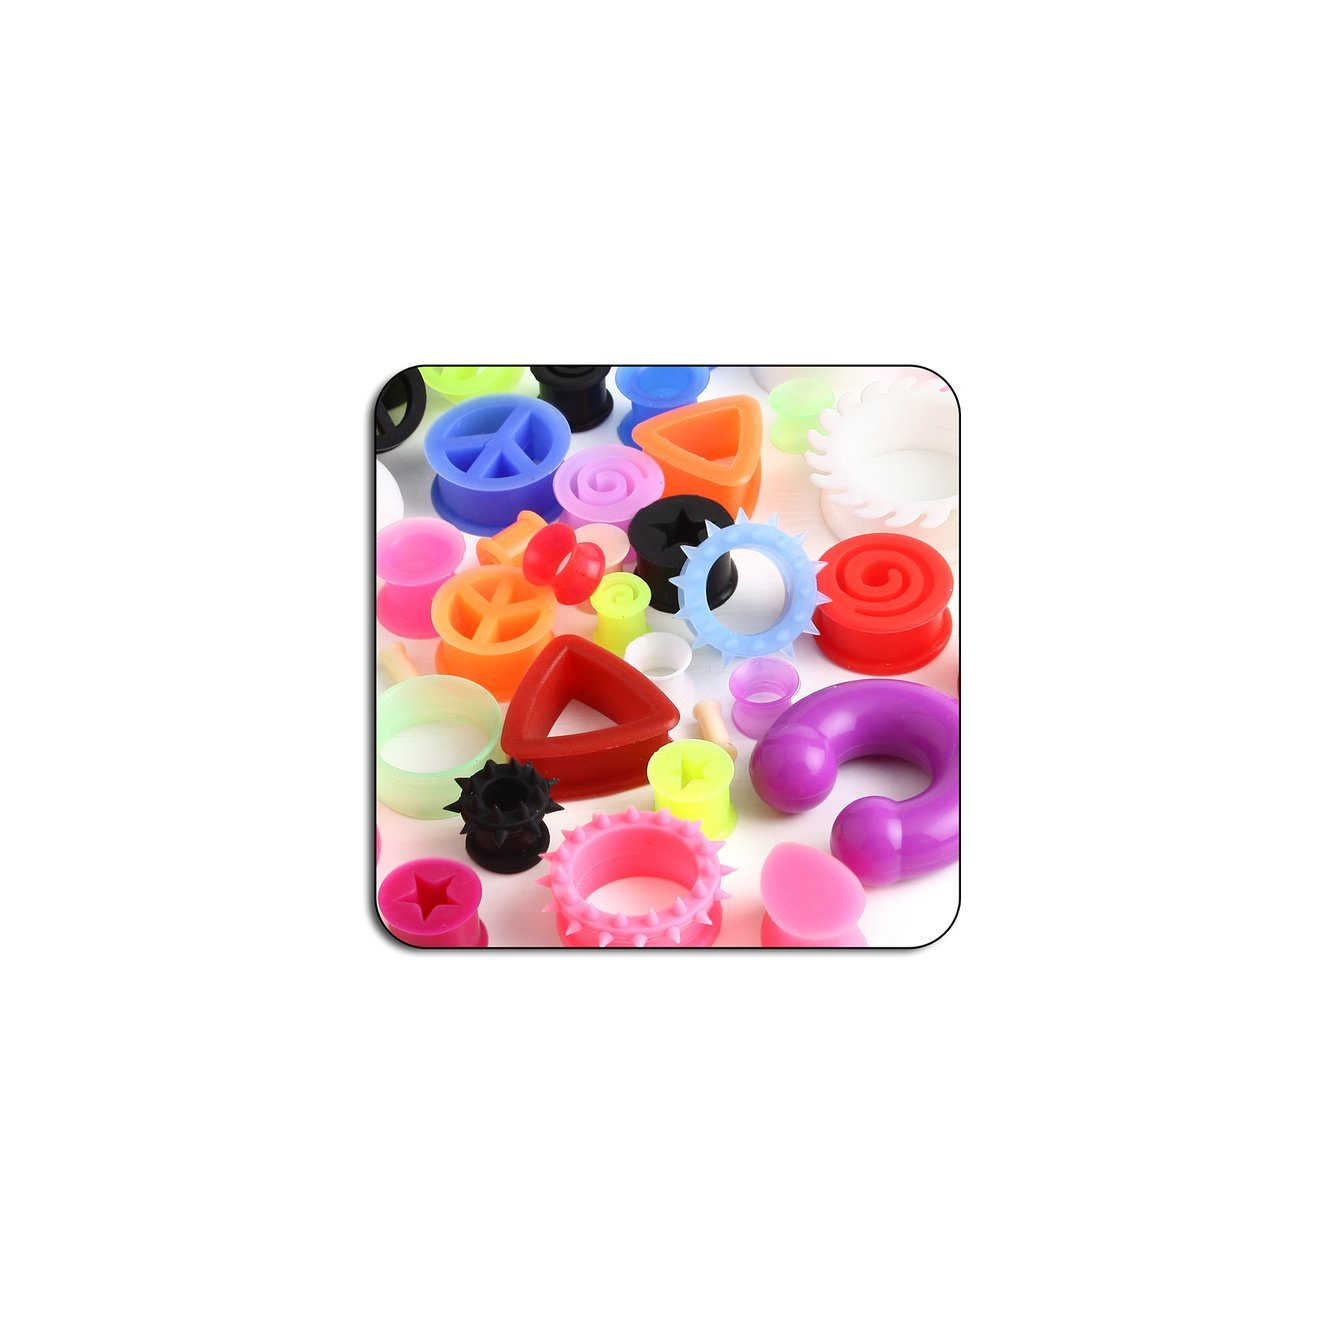 Bubble Body Piercing Specials - Value Pack Of Mix Silicone Tunnels Plugs Expanders And Circulars - Pack Of 50Pcs